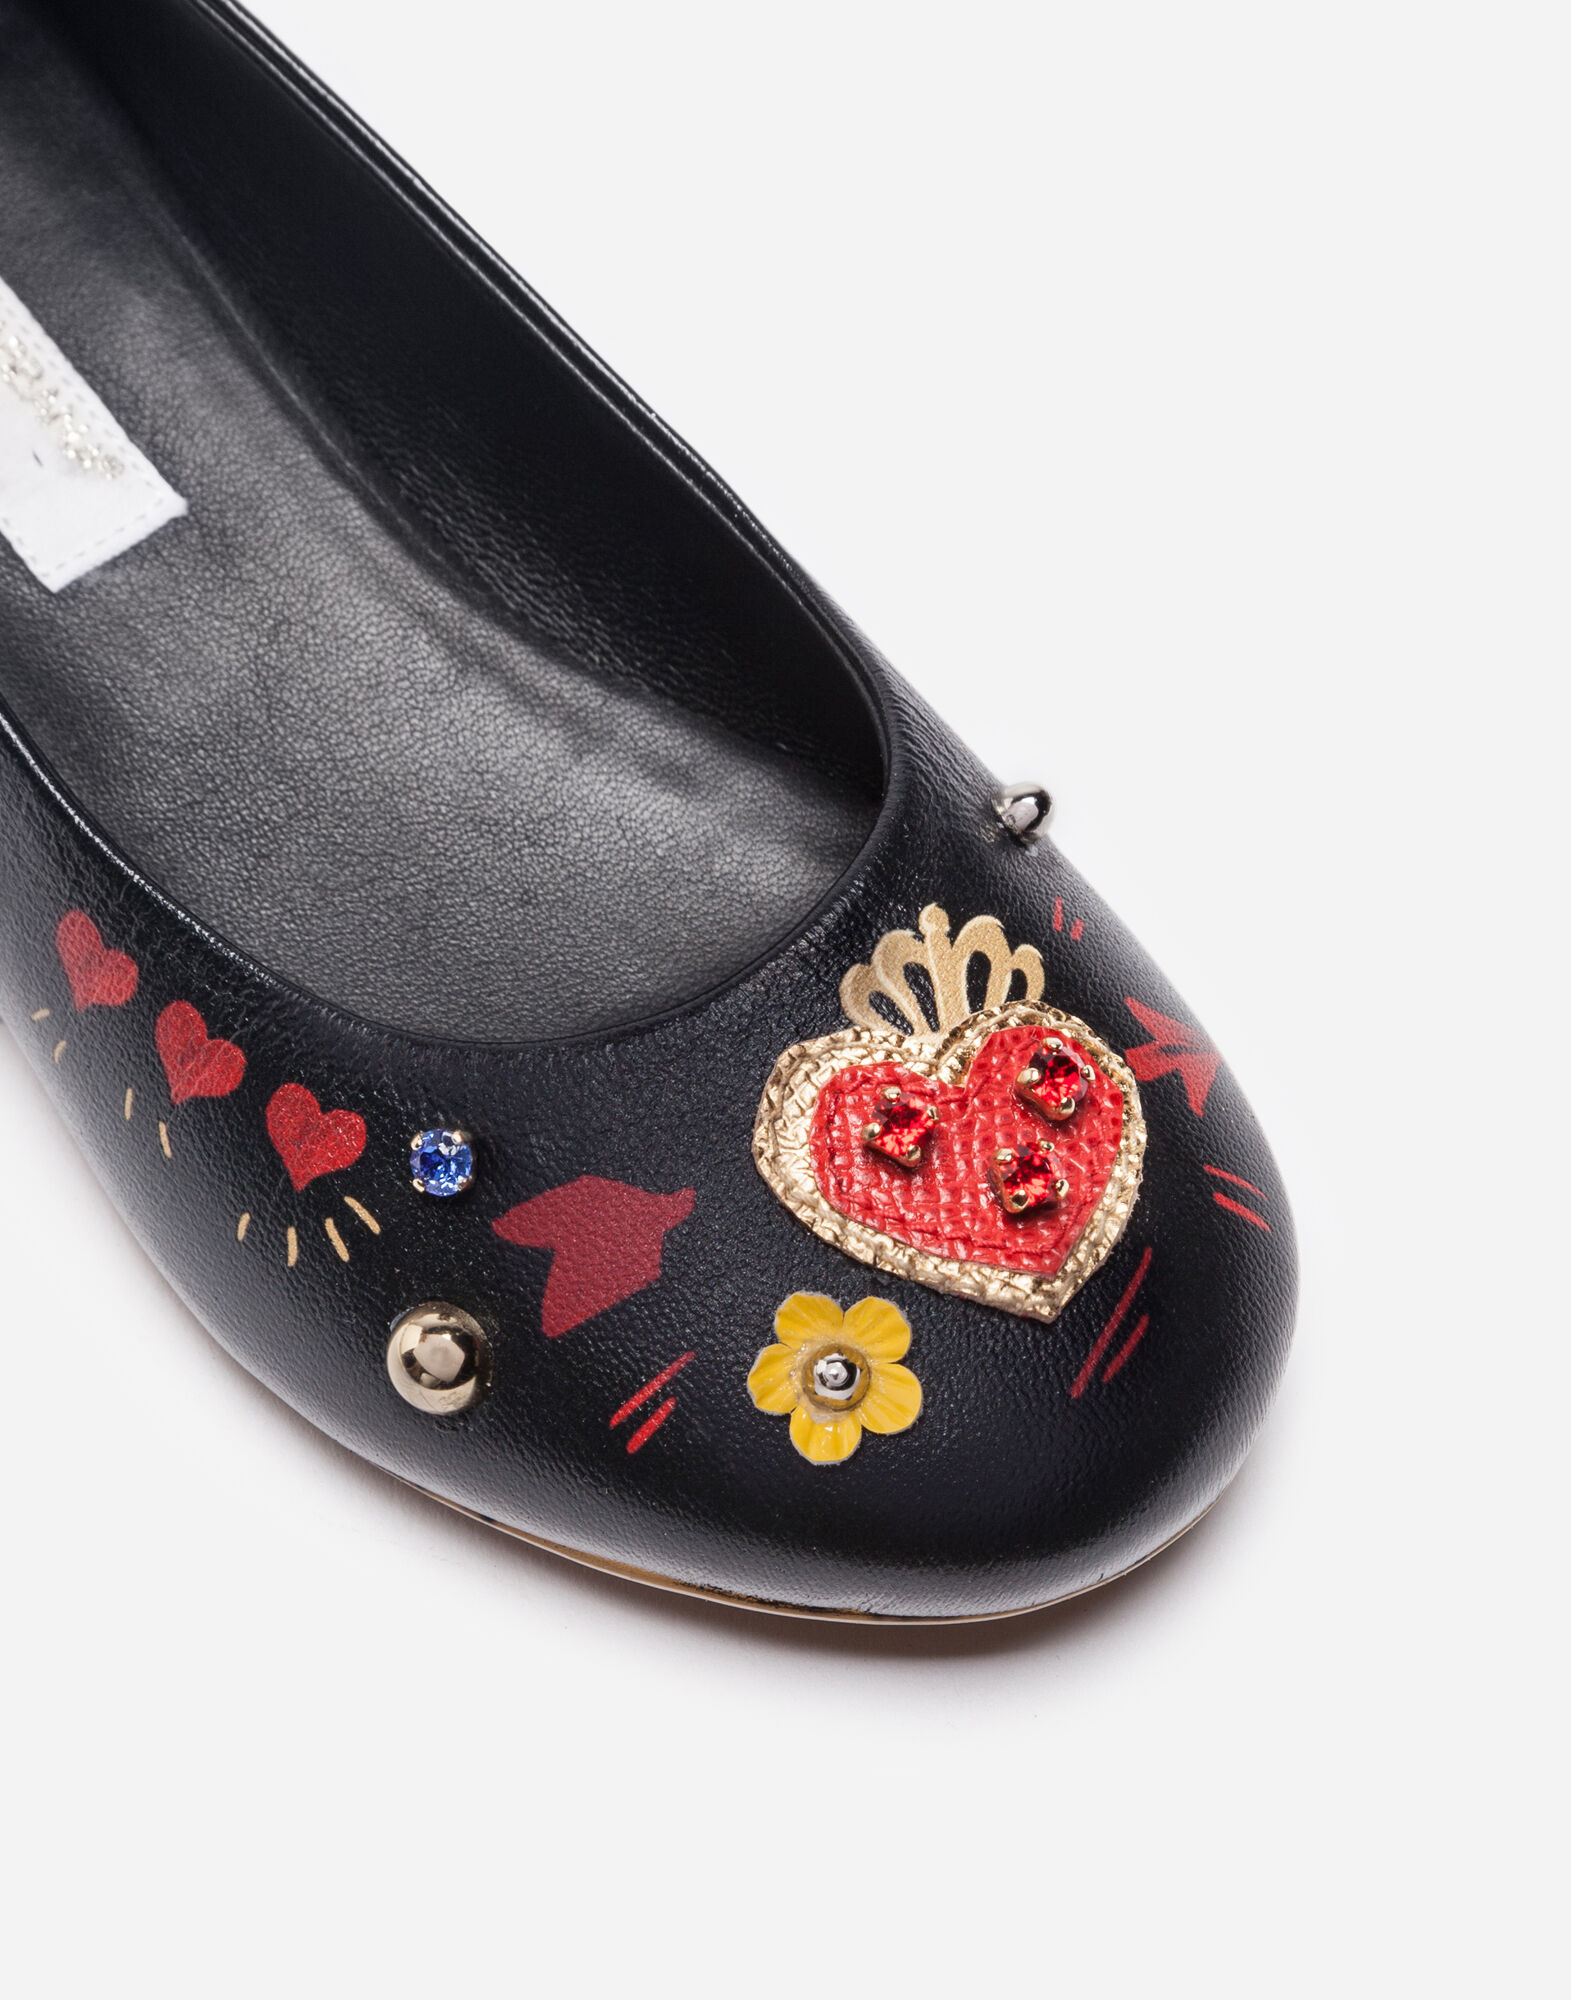 LEATHER BALLET FLATS WITH APPLIQUÉ